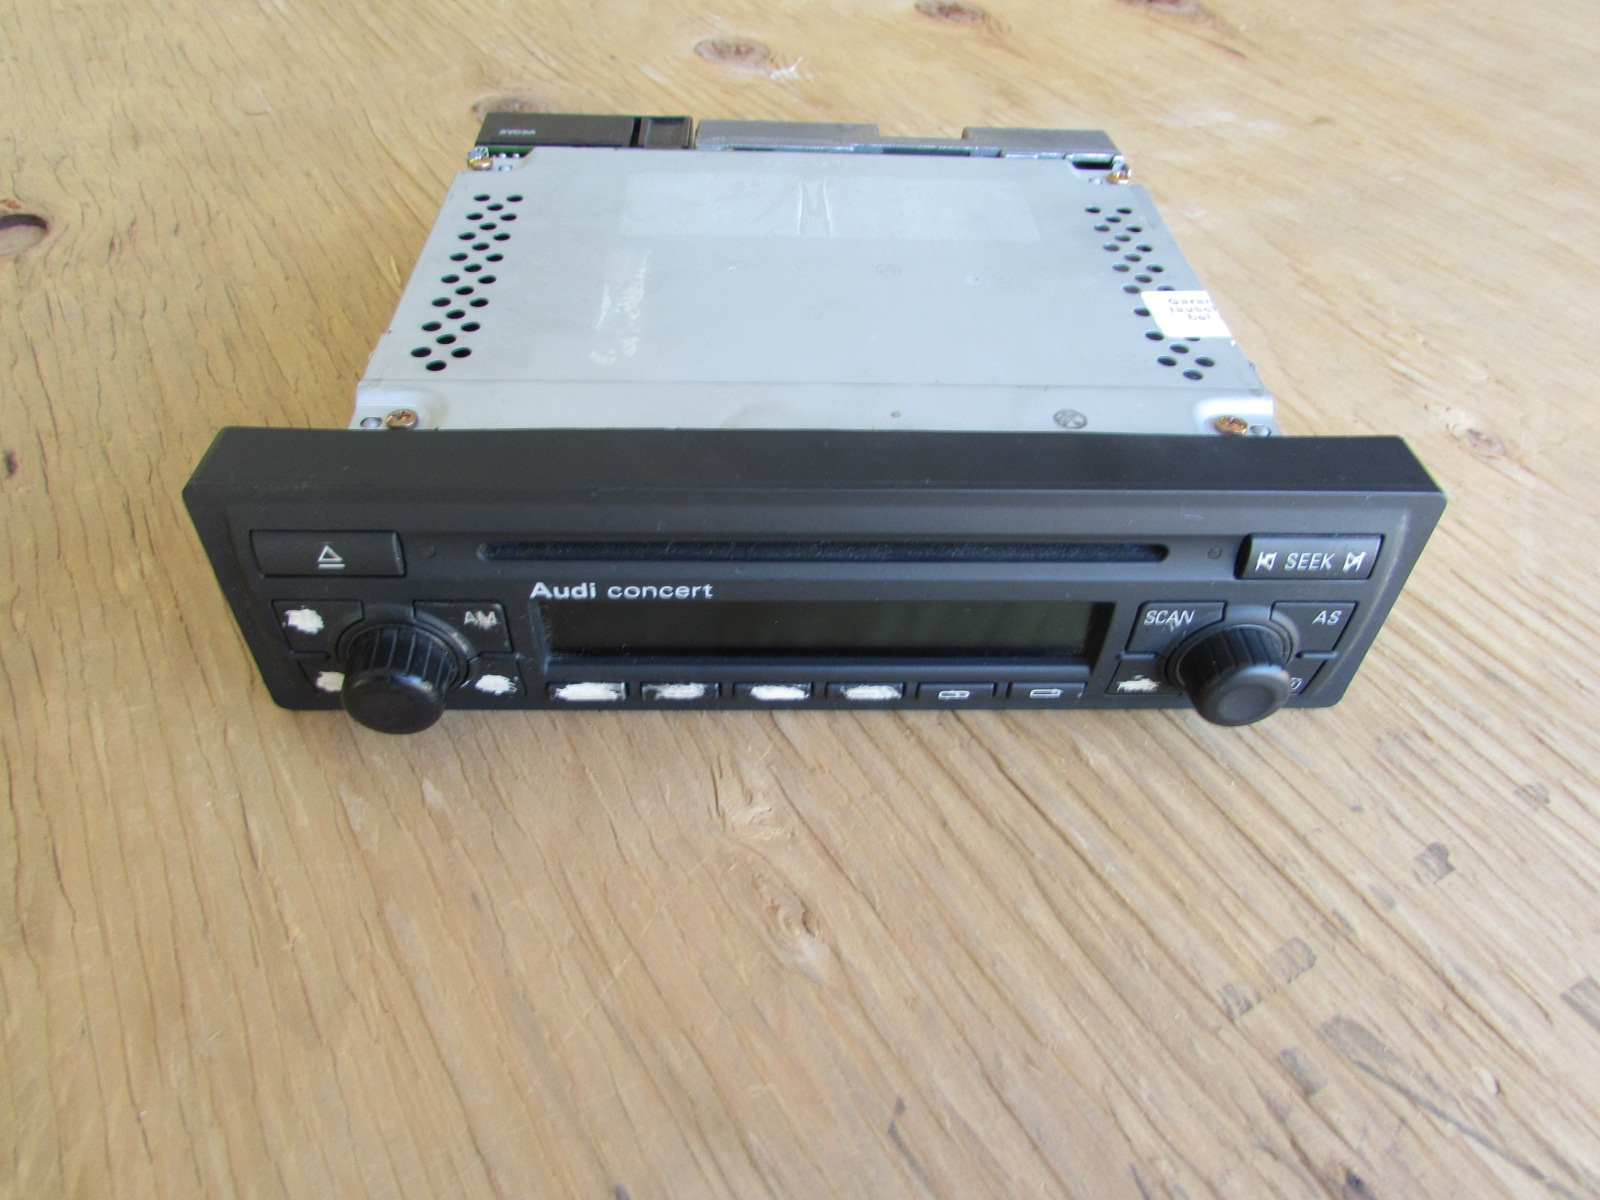 Audi Tt Mk1 8n Concert 2 Cd Player Radio Stereo Head Unit